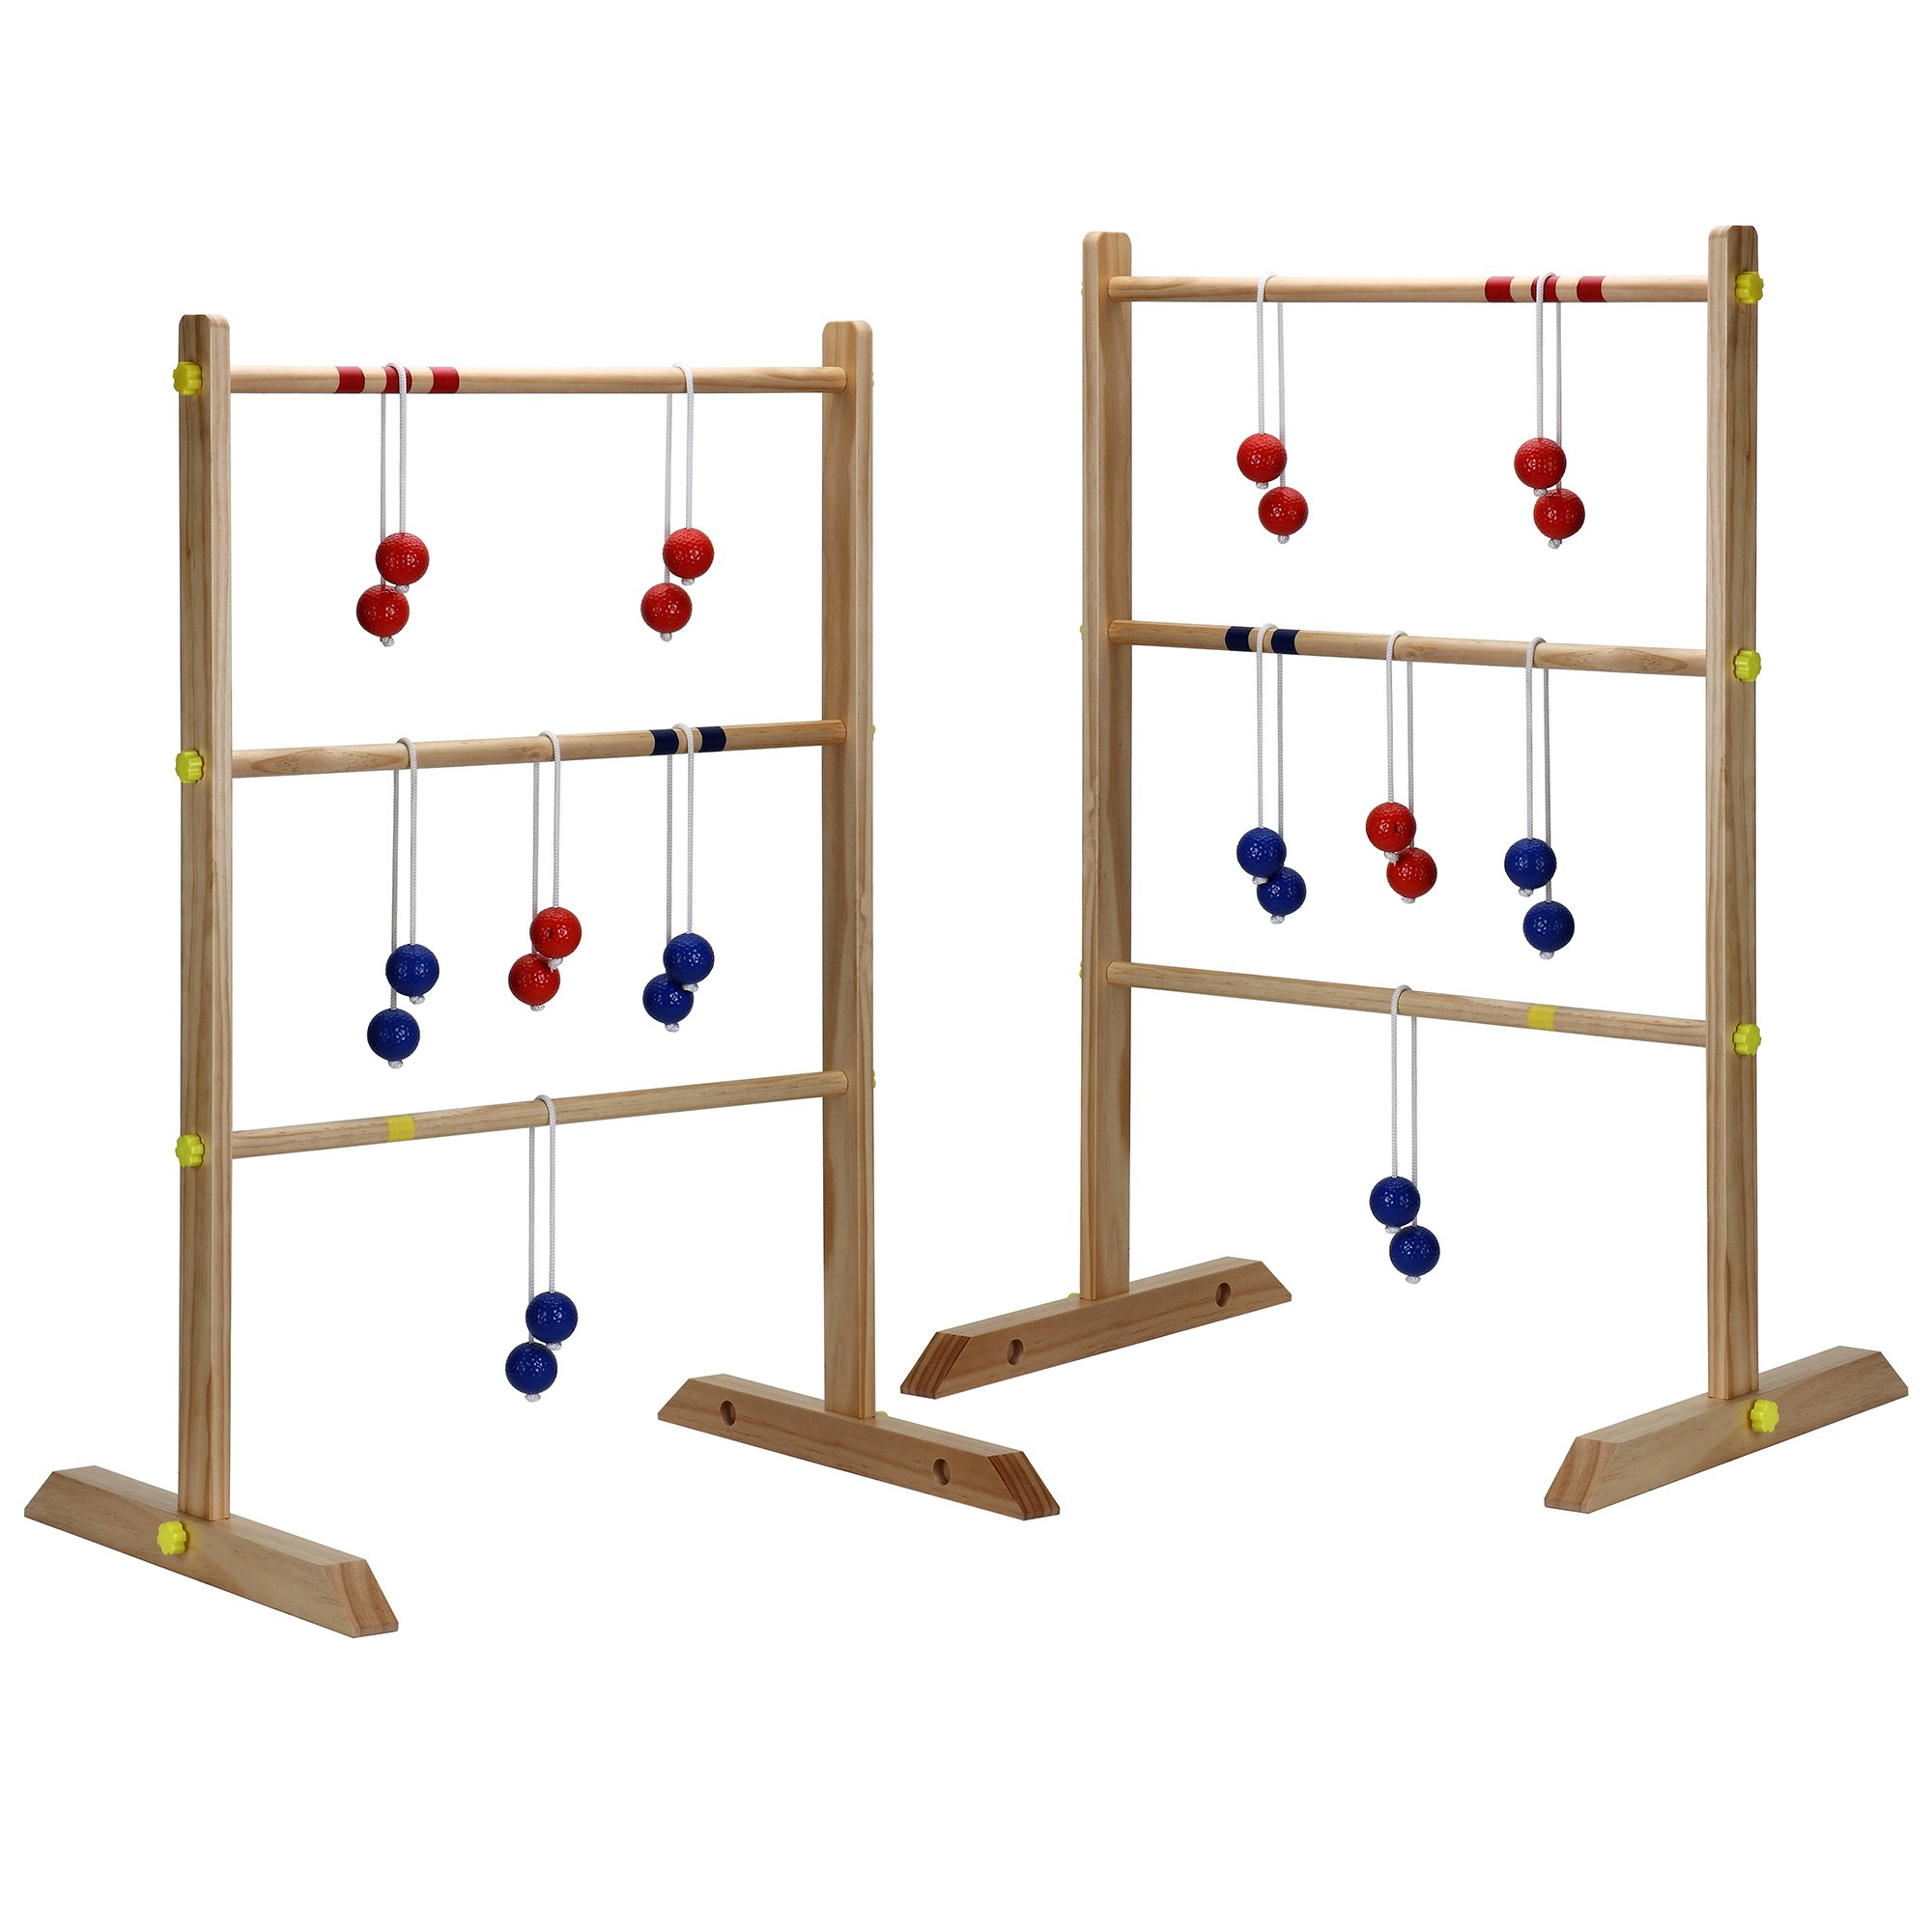 Hathaway Solid Wood Ladder Toss Game Set Brown by Hathaway